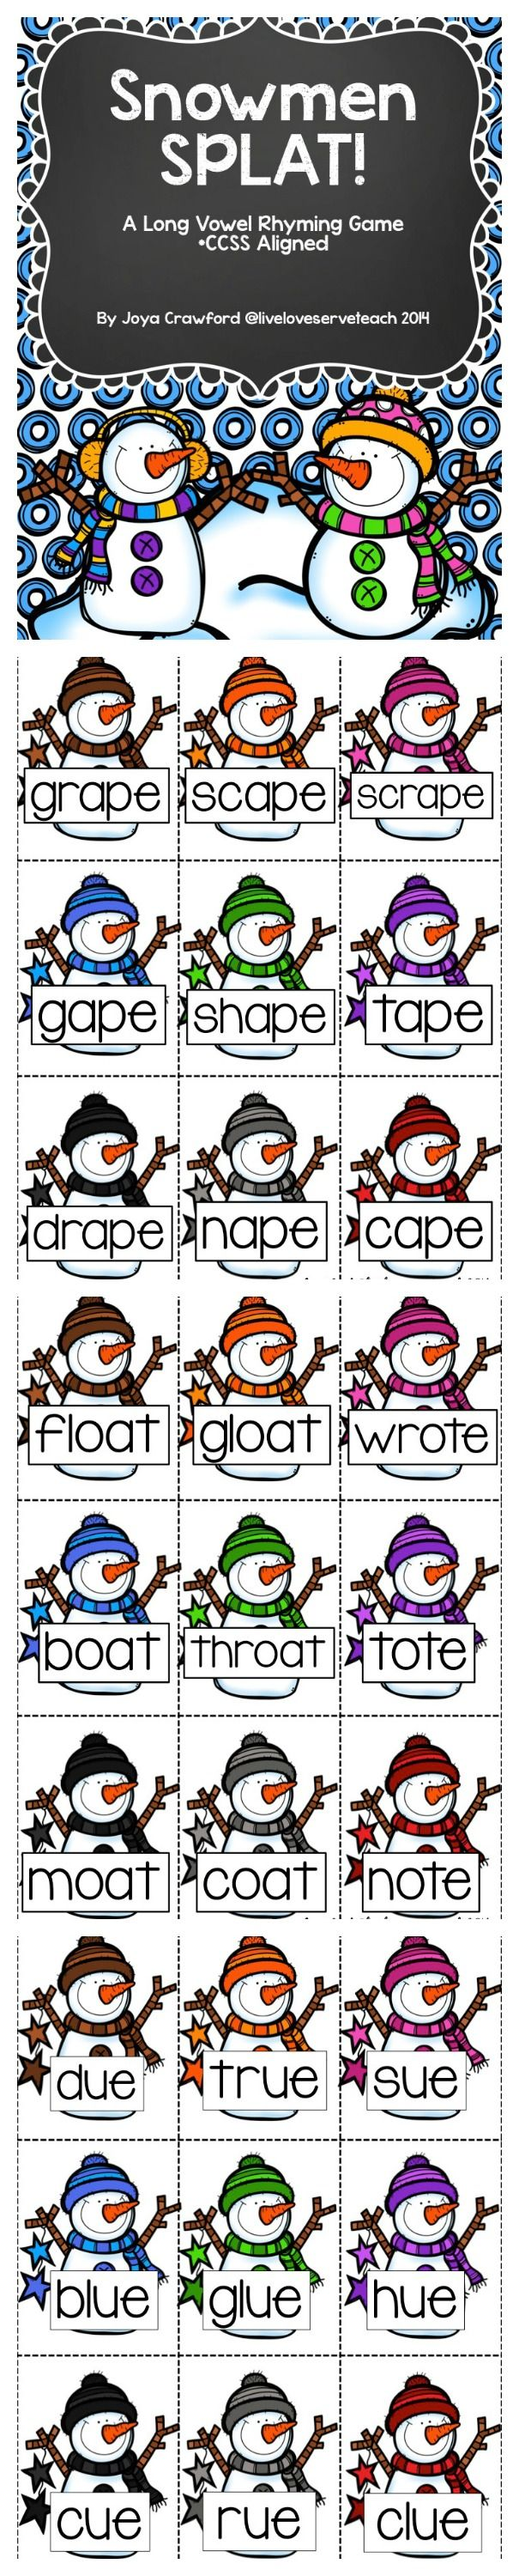 Workbooks rhyming patterns worksheets : 276 best Phonics images on Pinterest | School, Classroom ideas and ...